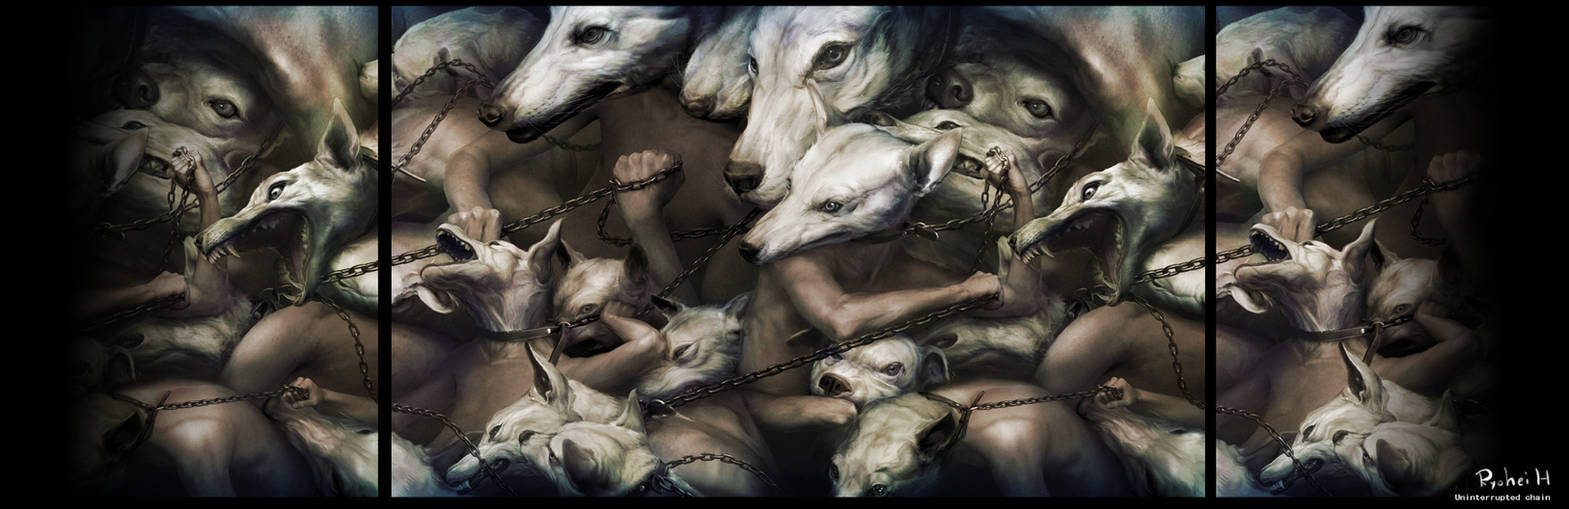 Uninterrupted chain by Ryohei-Hase